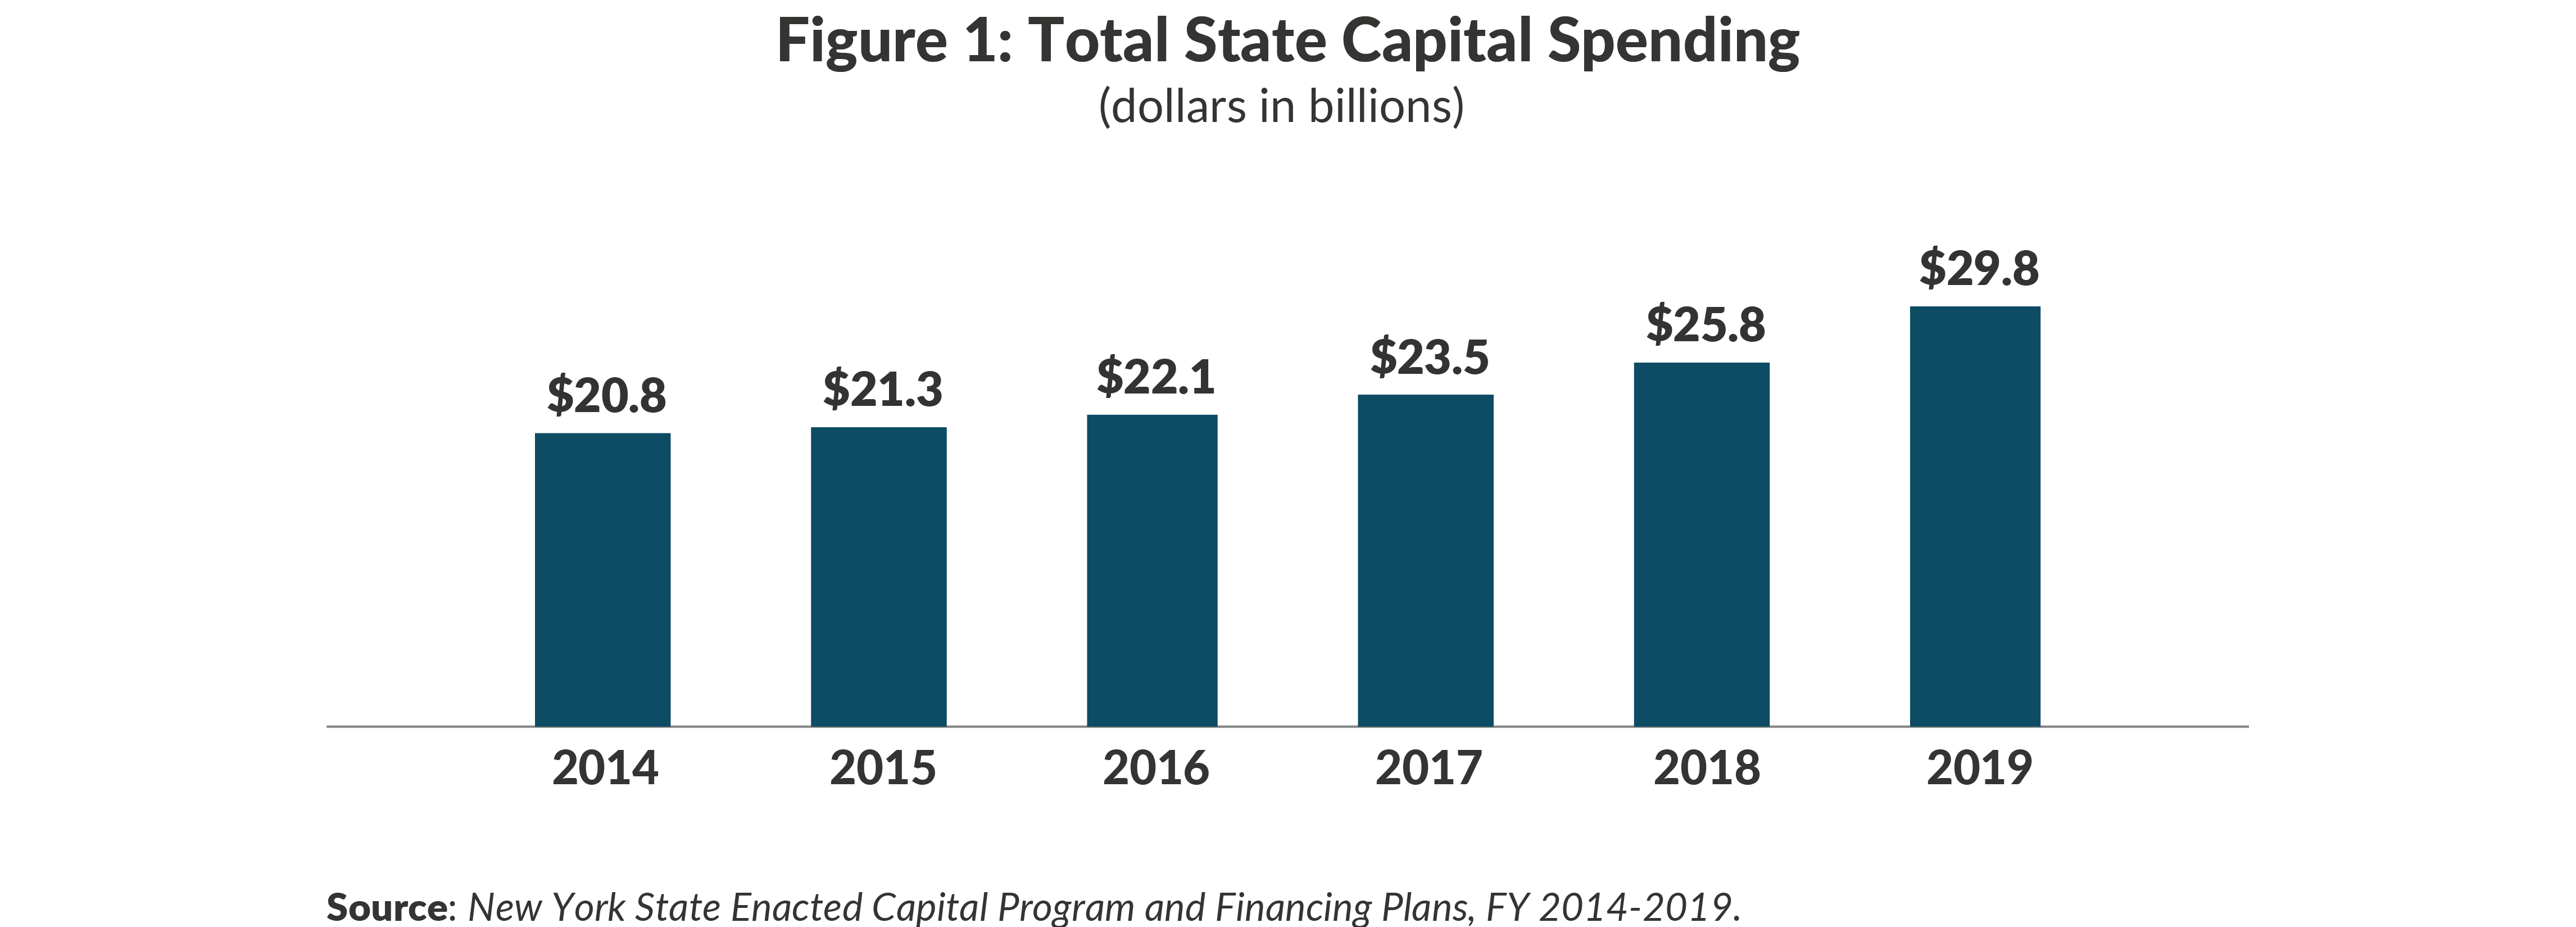 Figure 1: Total State Capital Spending